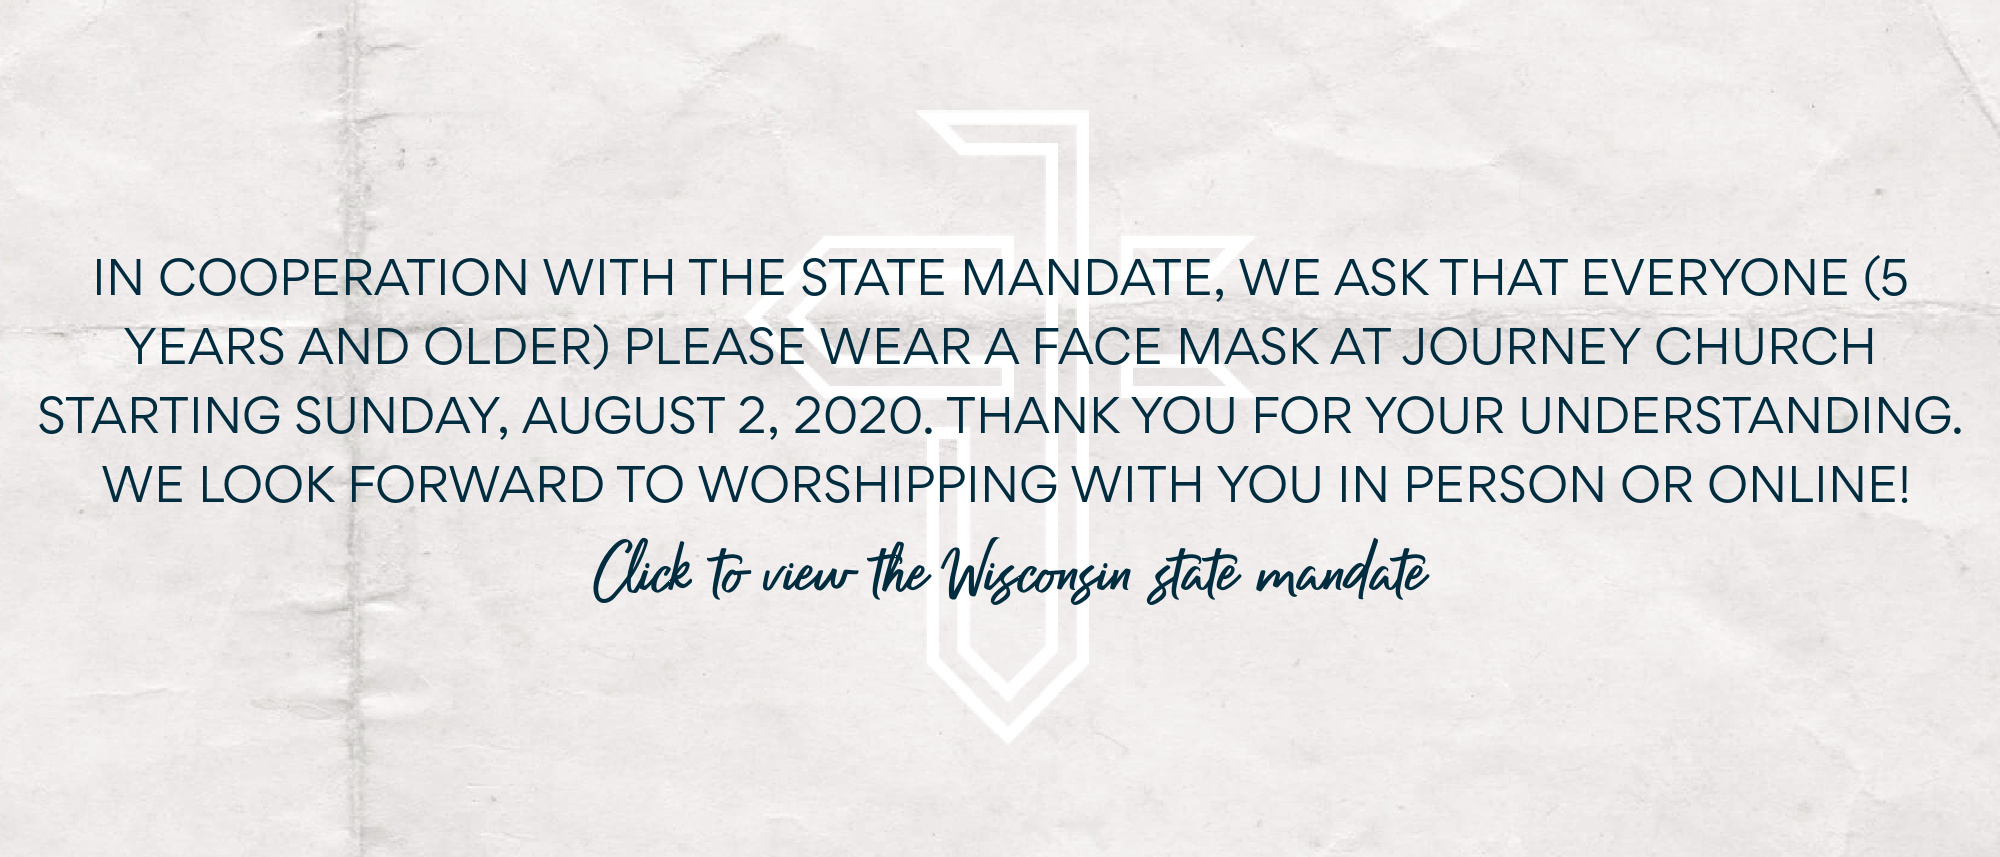 In cooperation with the state mandate, we ask that you wear a face mask at Journey Church starting August 2. Thank you for your understanding!